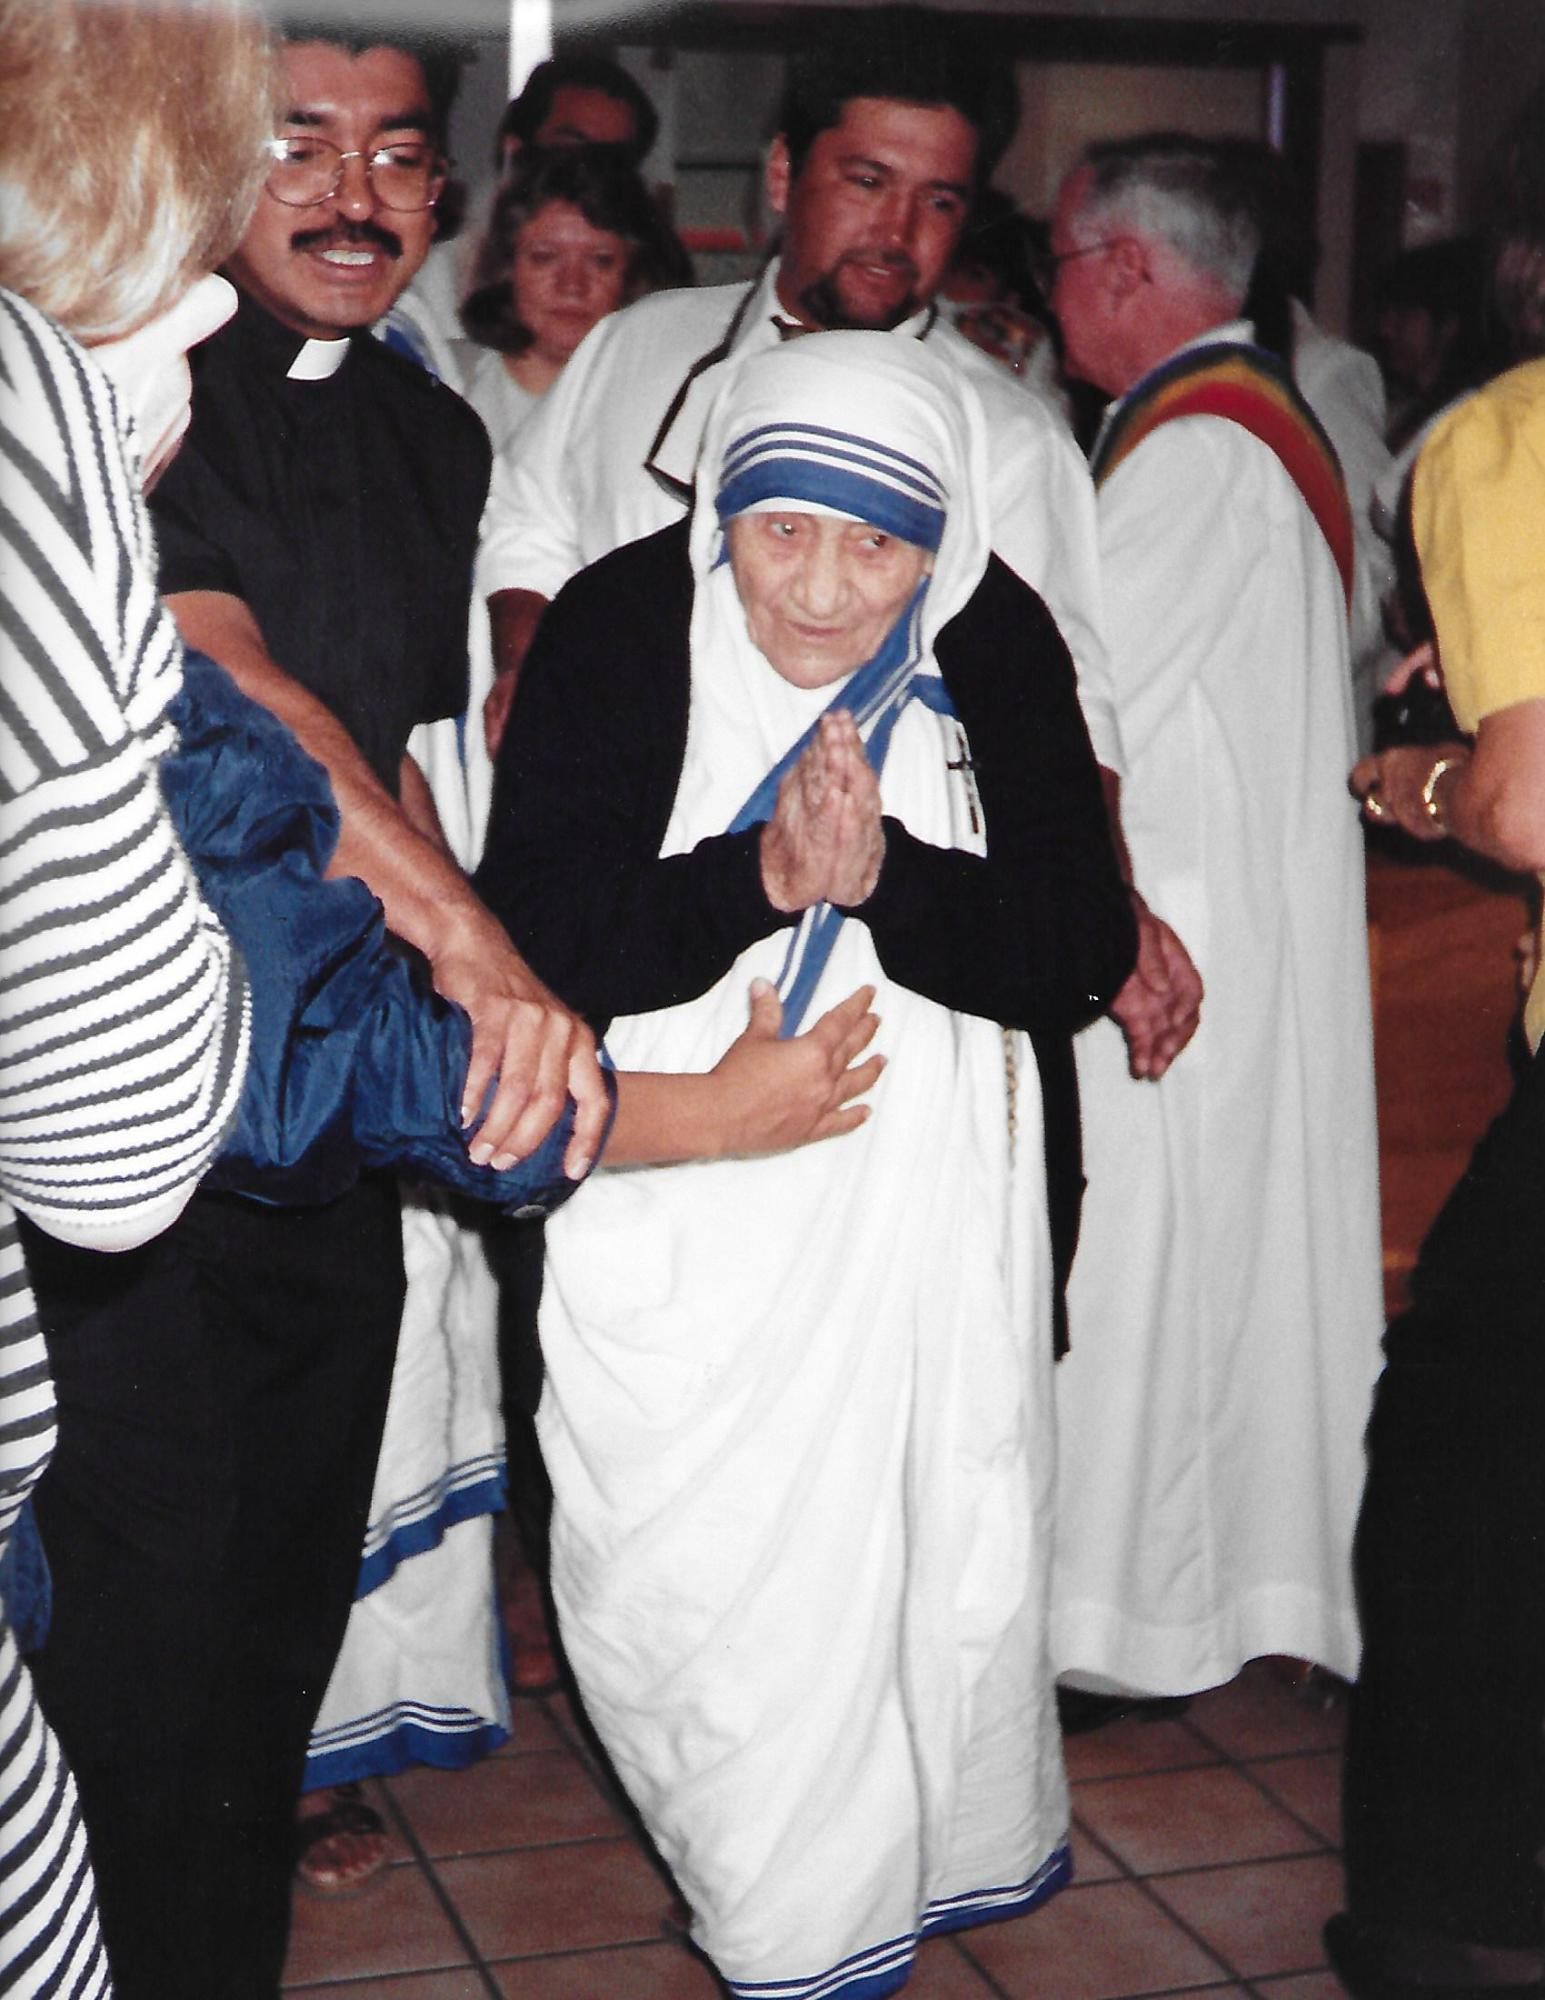 Rev. Henry Rodriguez accompanies St. Teresa of Calcutta to her seat.